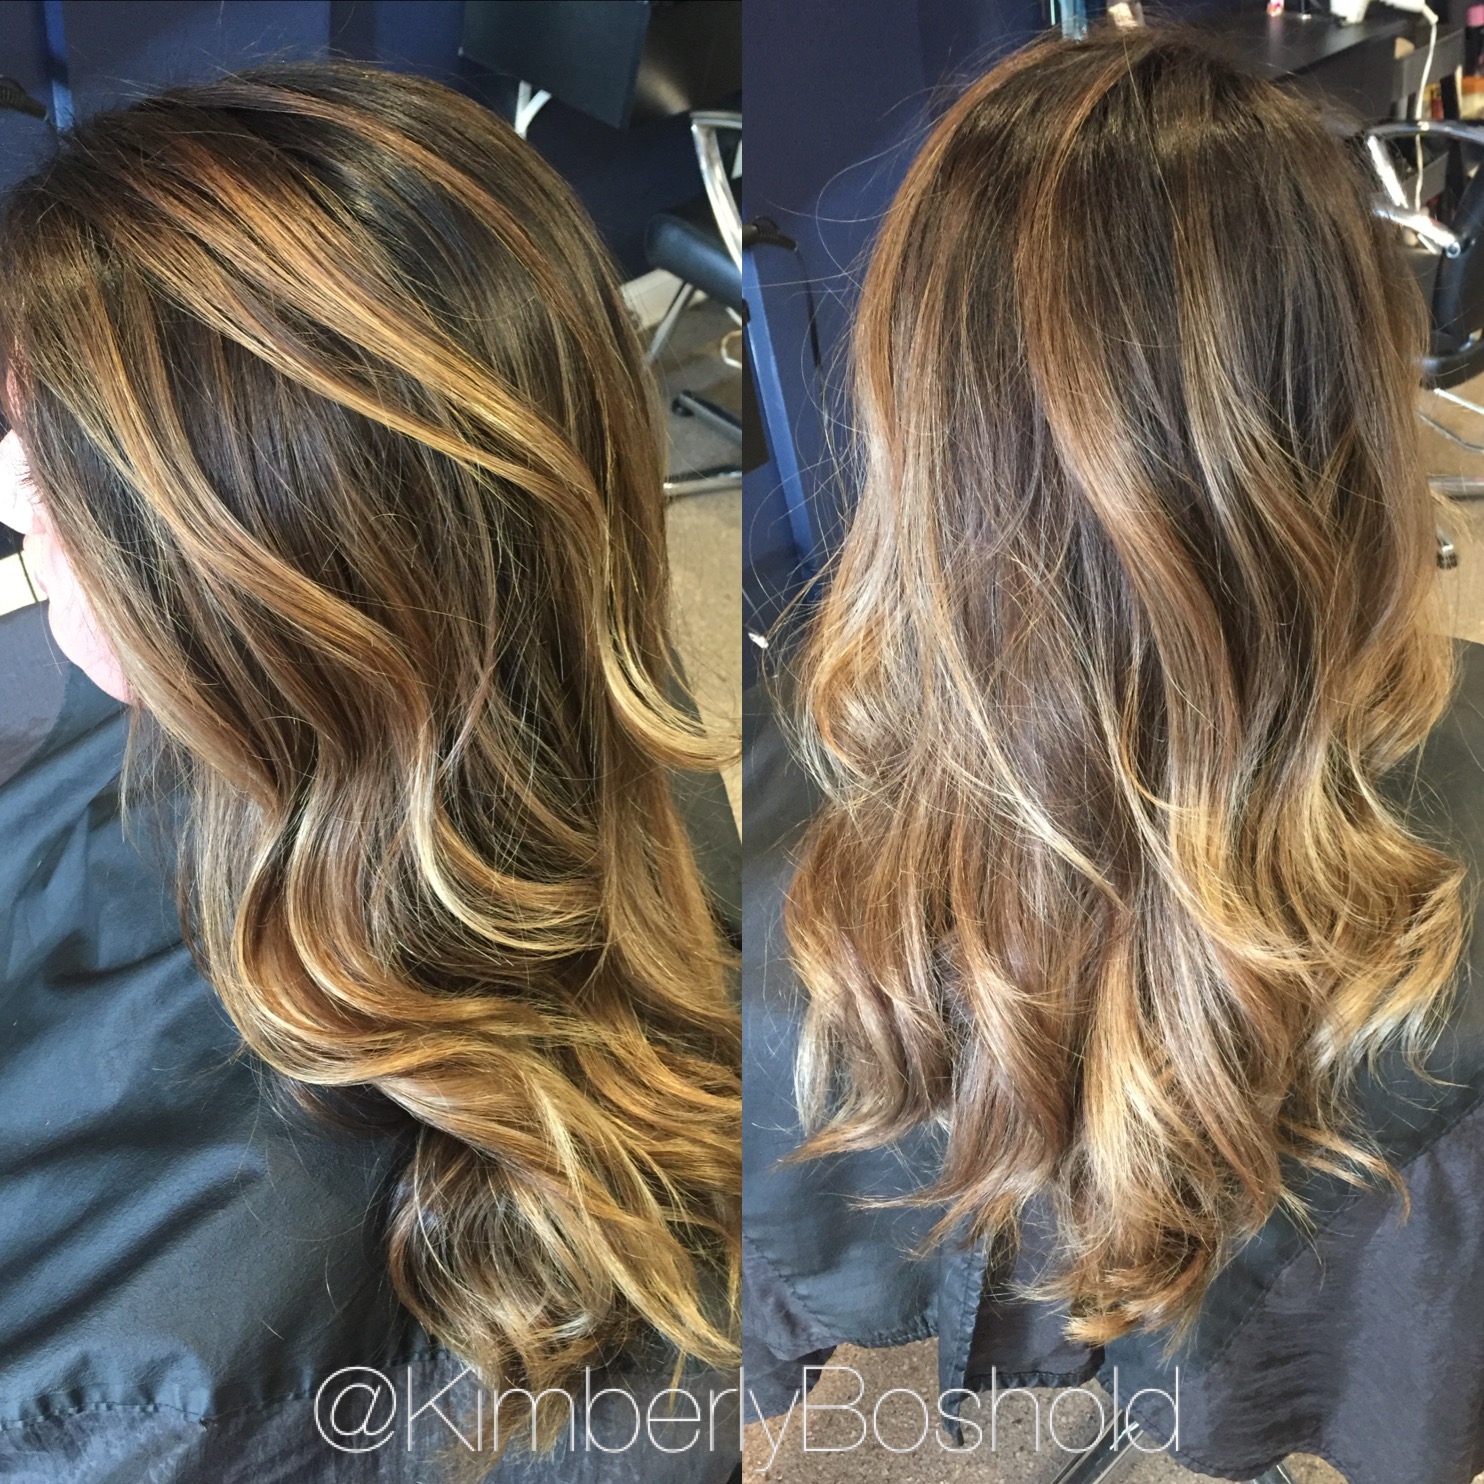 March Hair 2016 | Hair By Kimberly